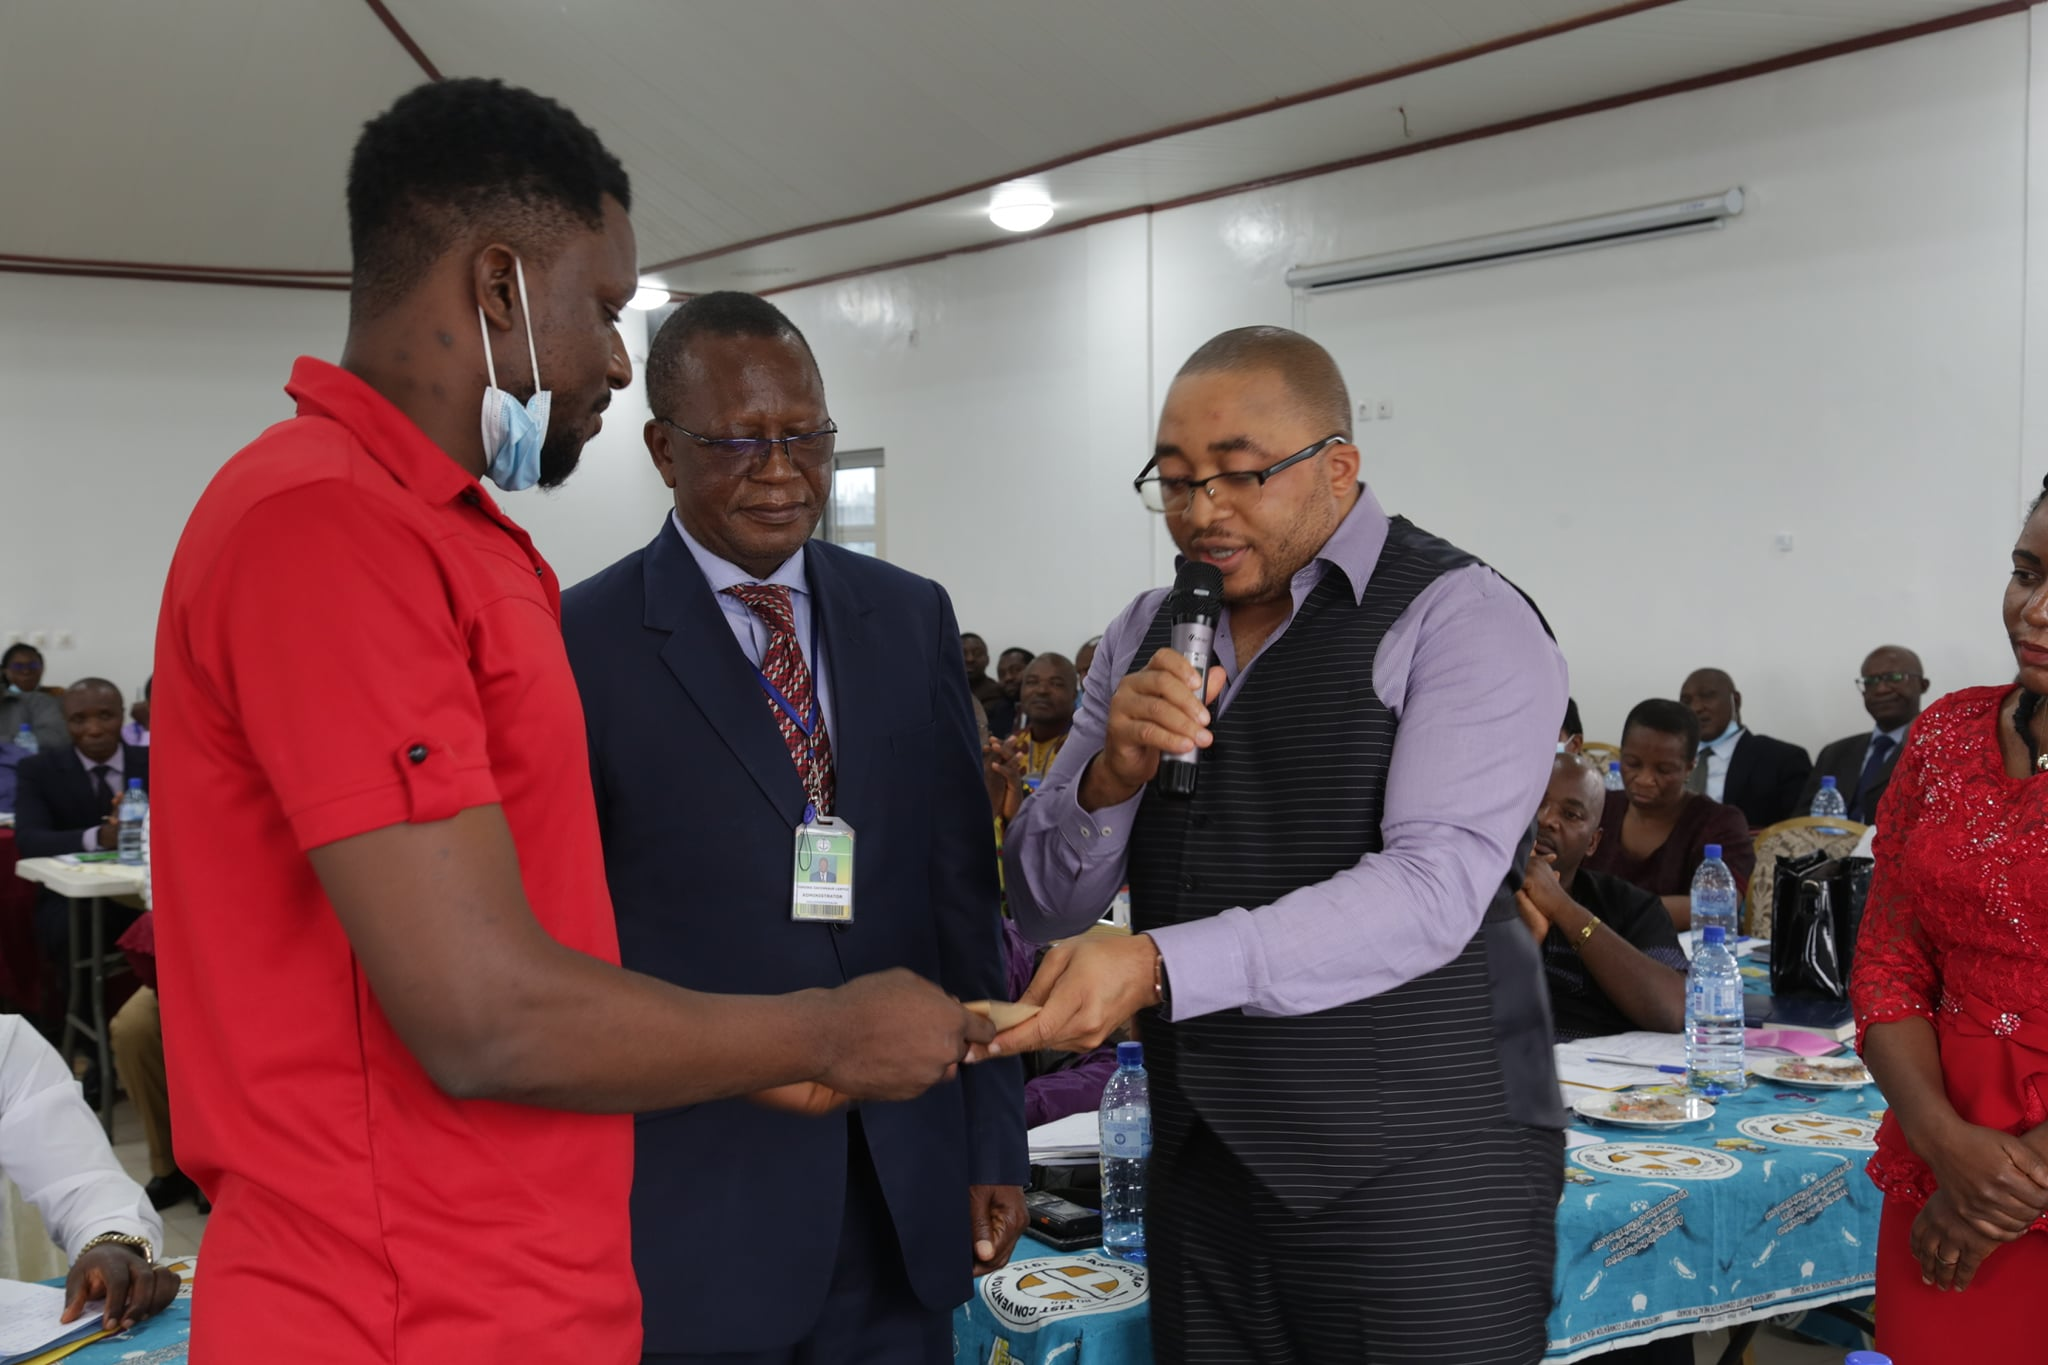 SPD Coordinator on behalf of the CBCHS hands fanacial support to the National Amputee Football team during the Chief of Centers meeting in Yaounde